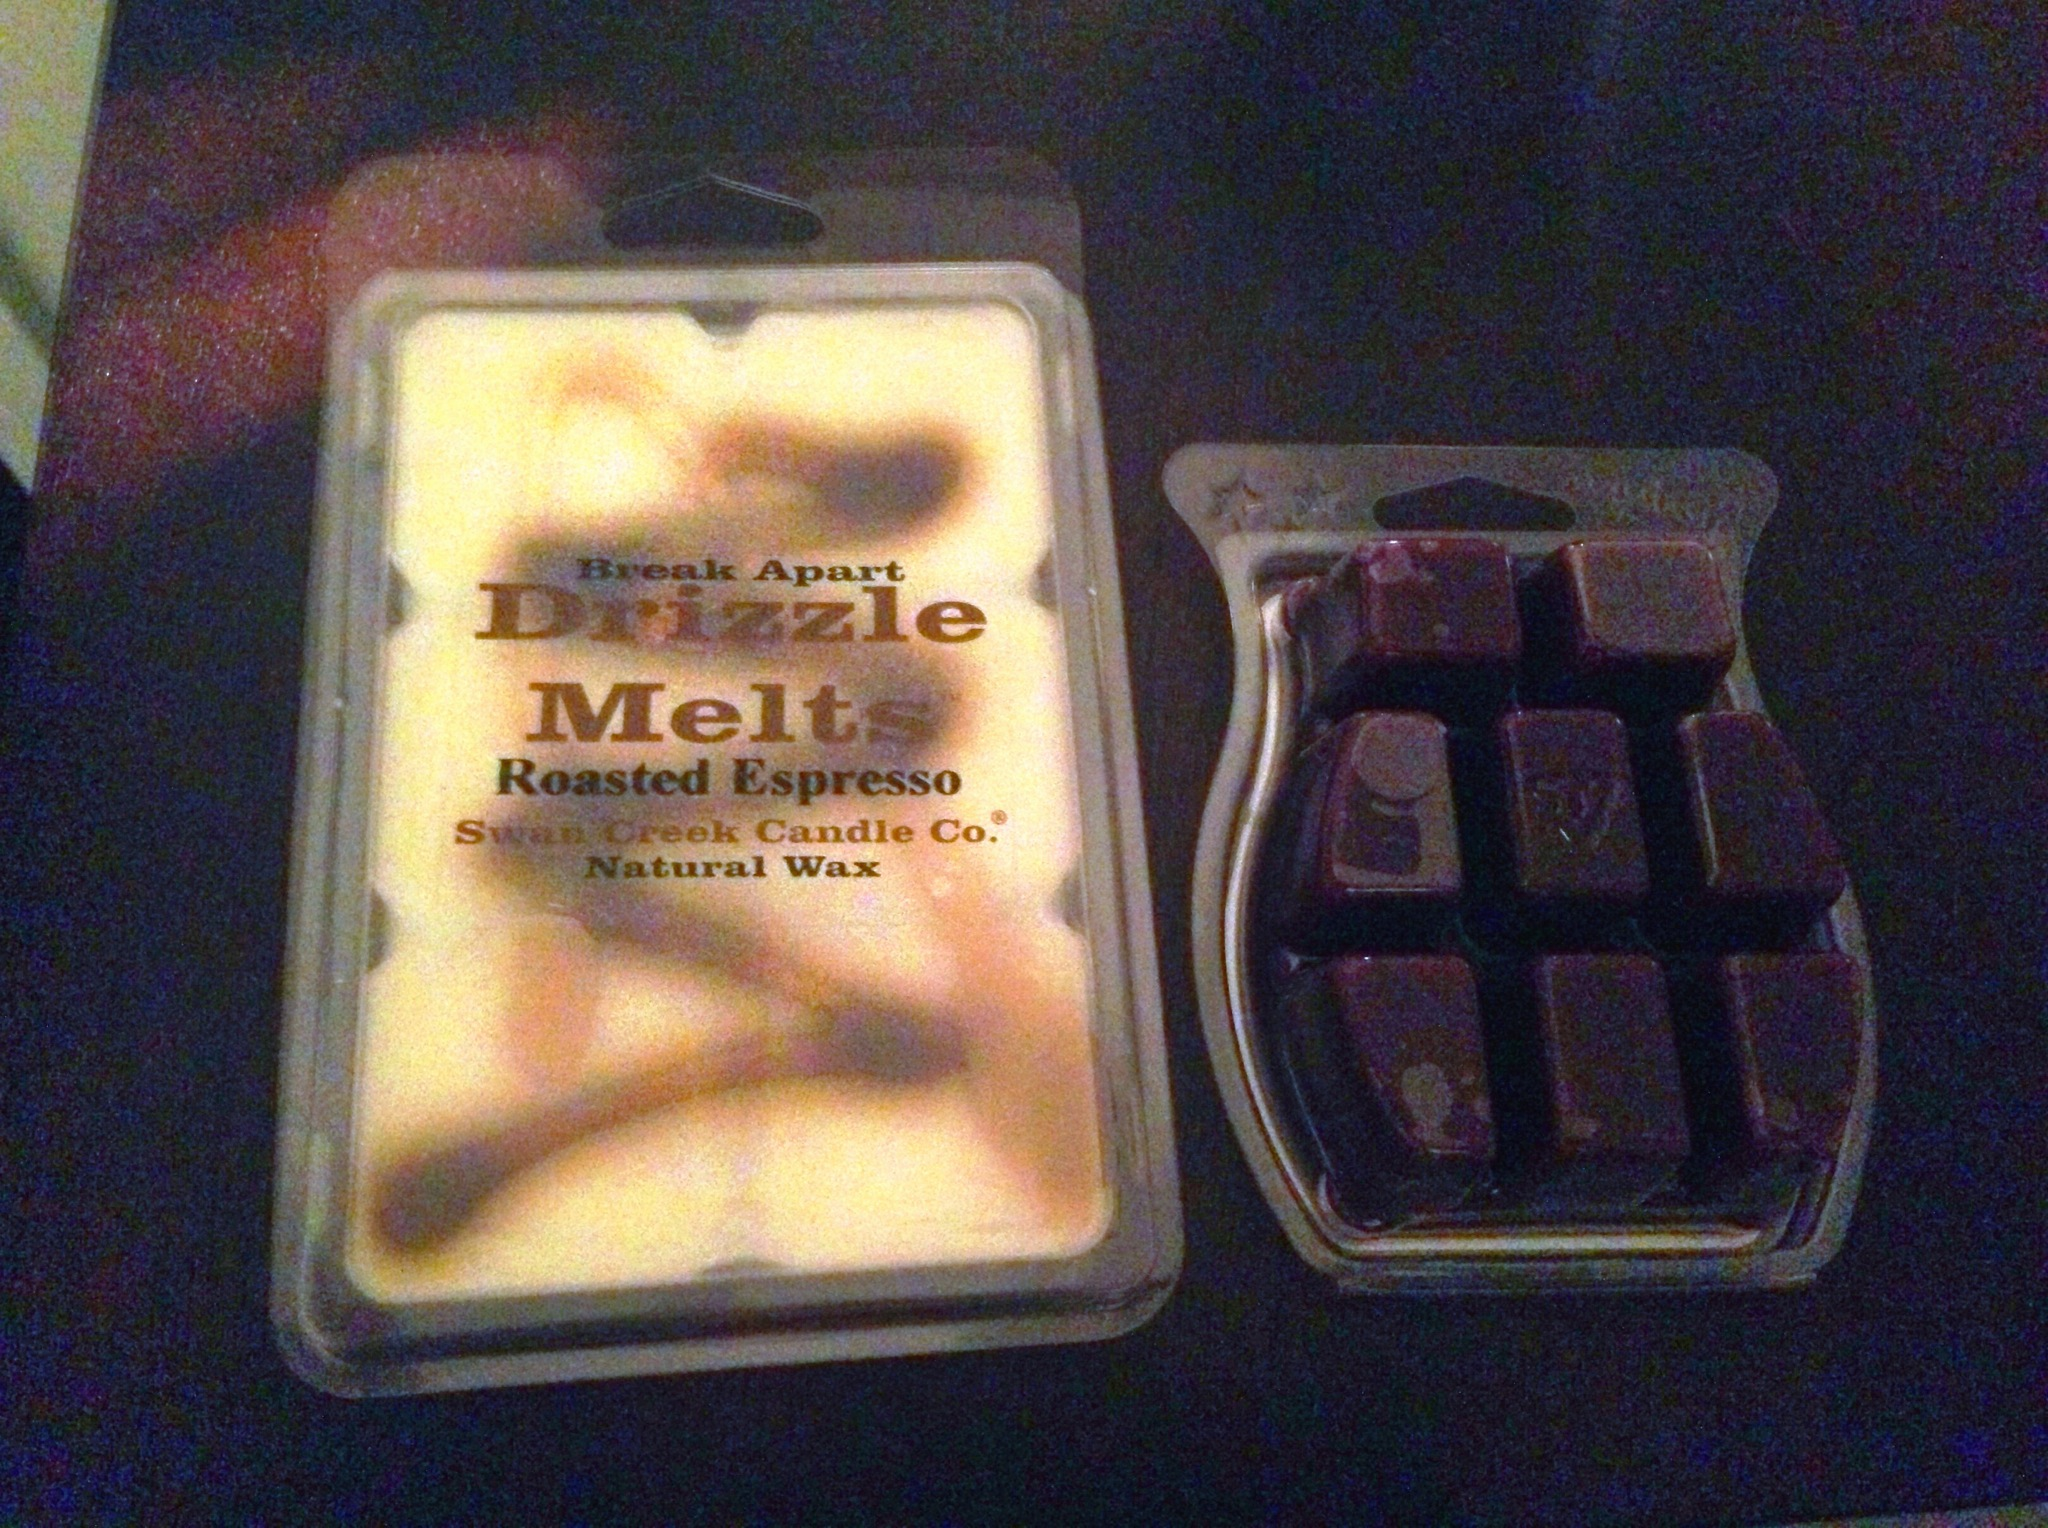 """Bigger and stronger than the """"other guys"""" at the same price! Find out about these drizzle melts - the best fall scented wax cubes I've found!"""